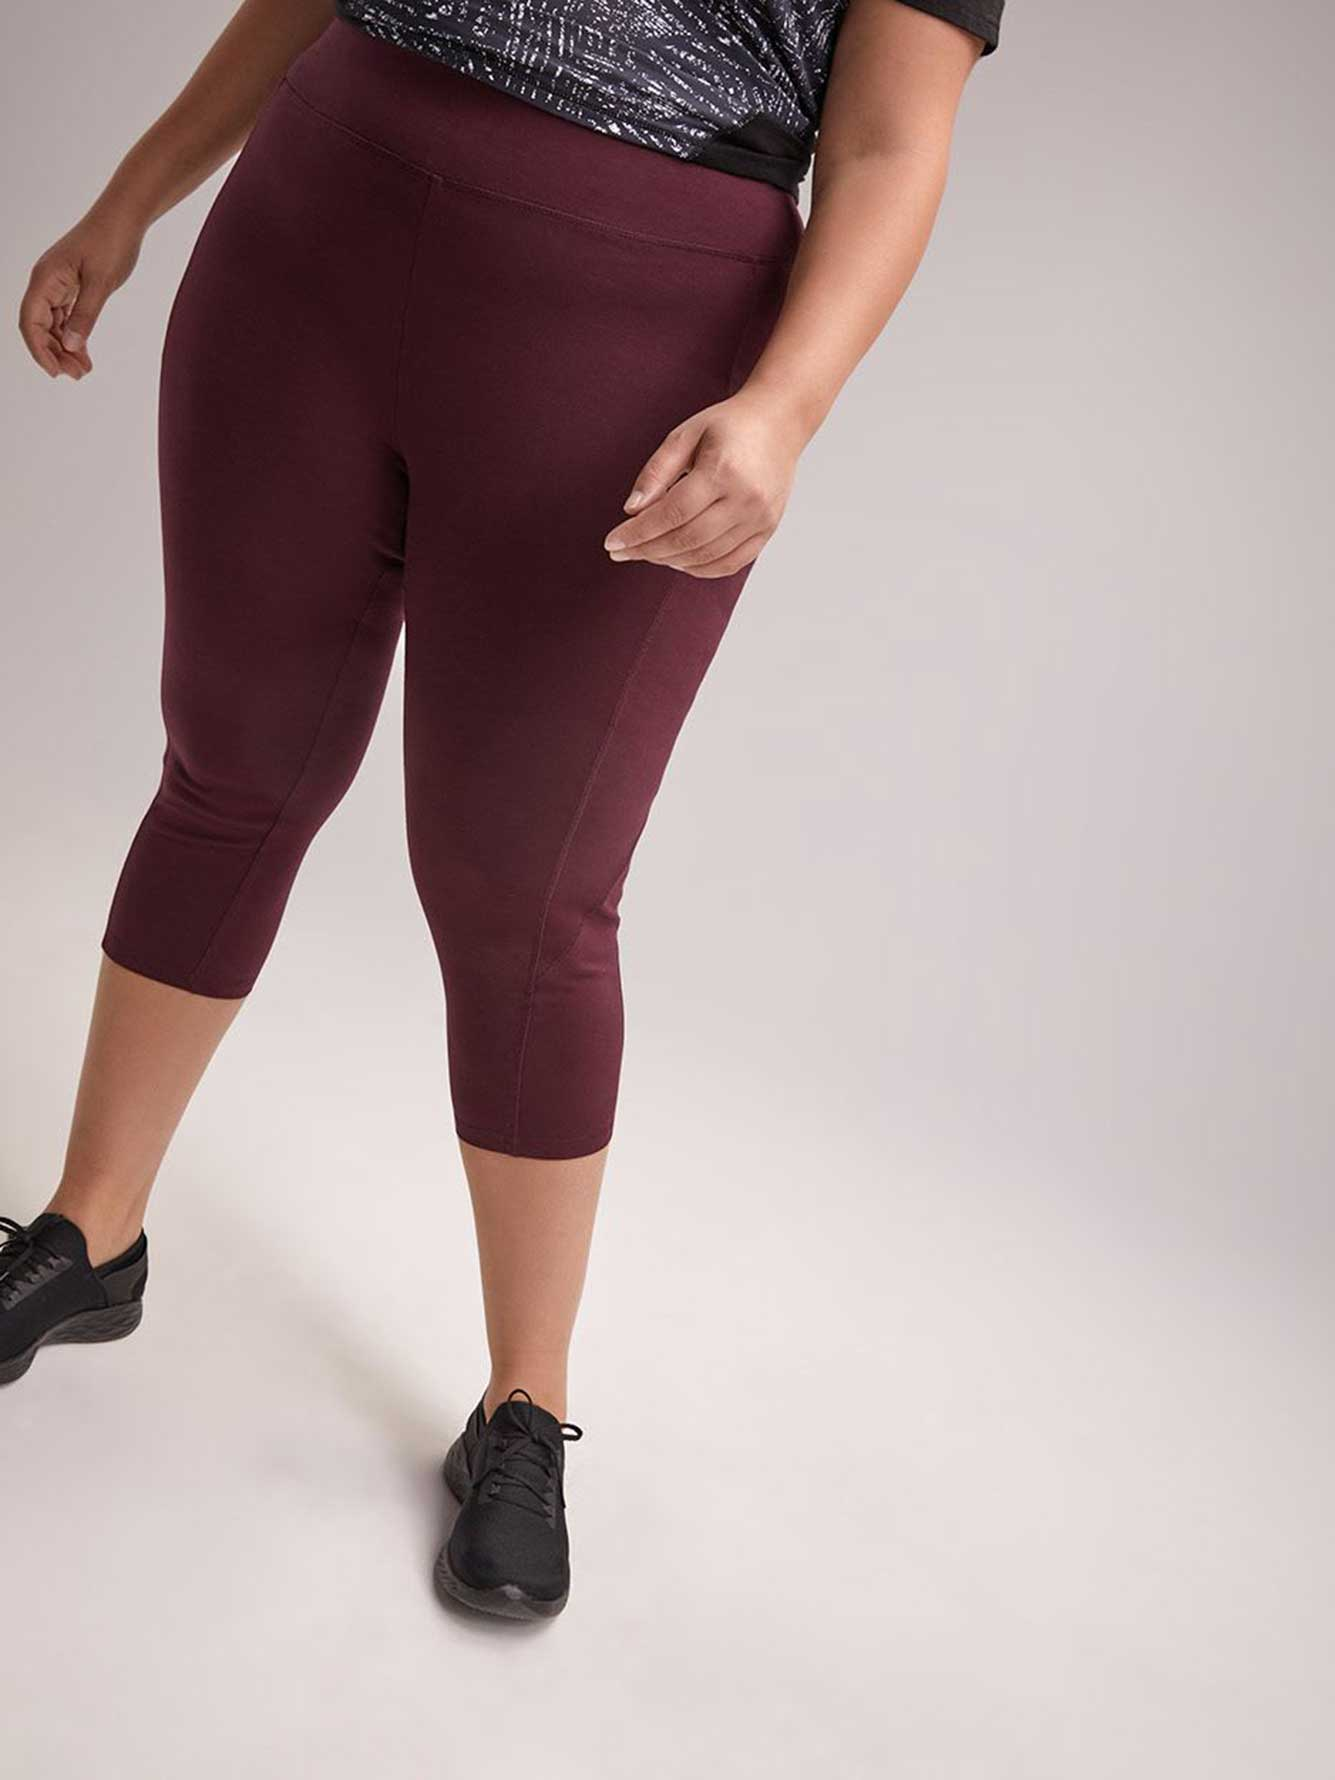 Plus-Size Capri Legging - ActiveZone